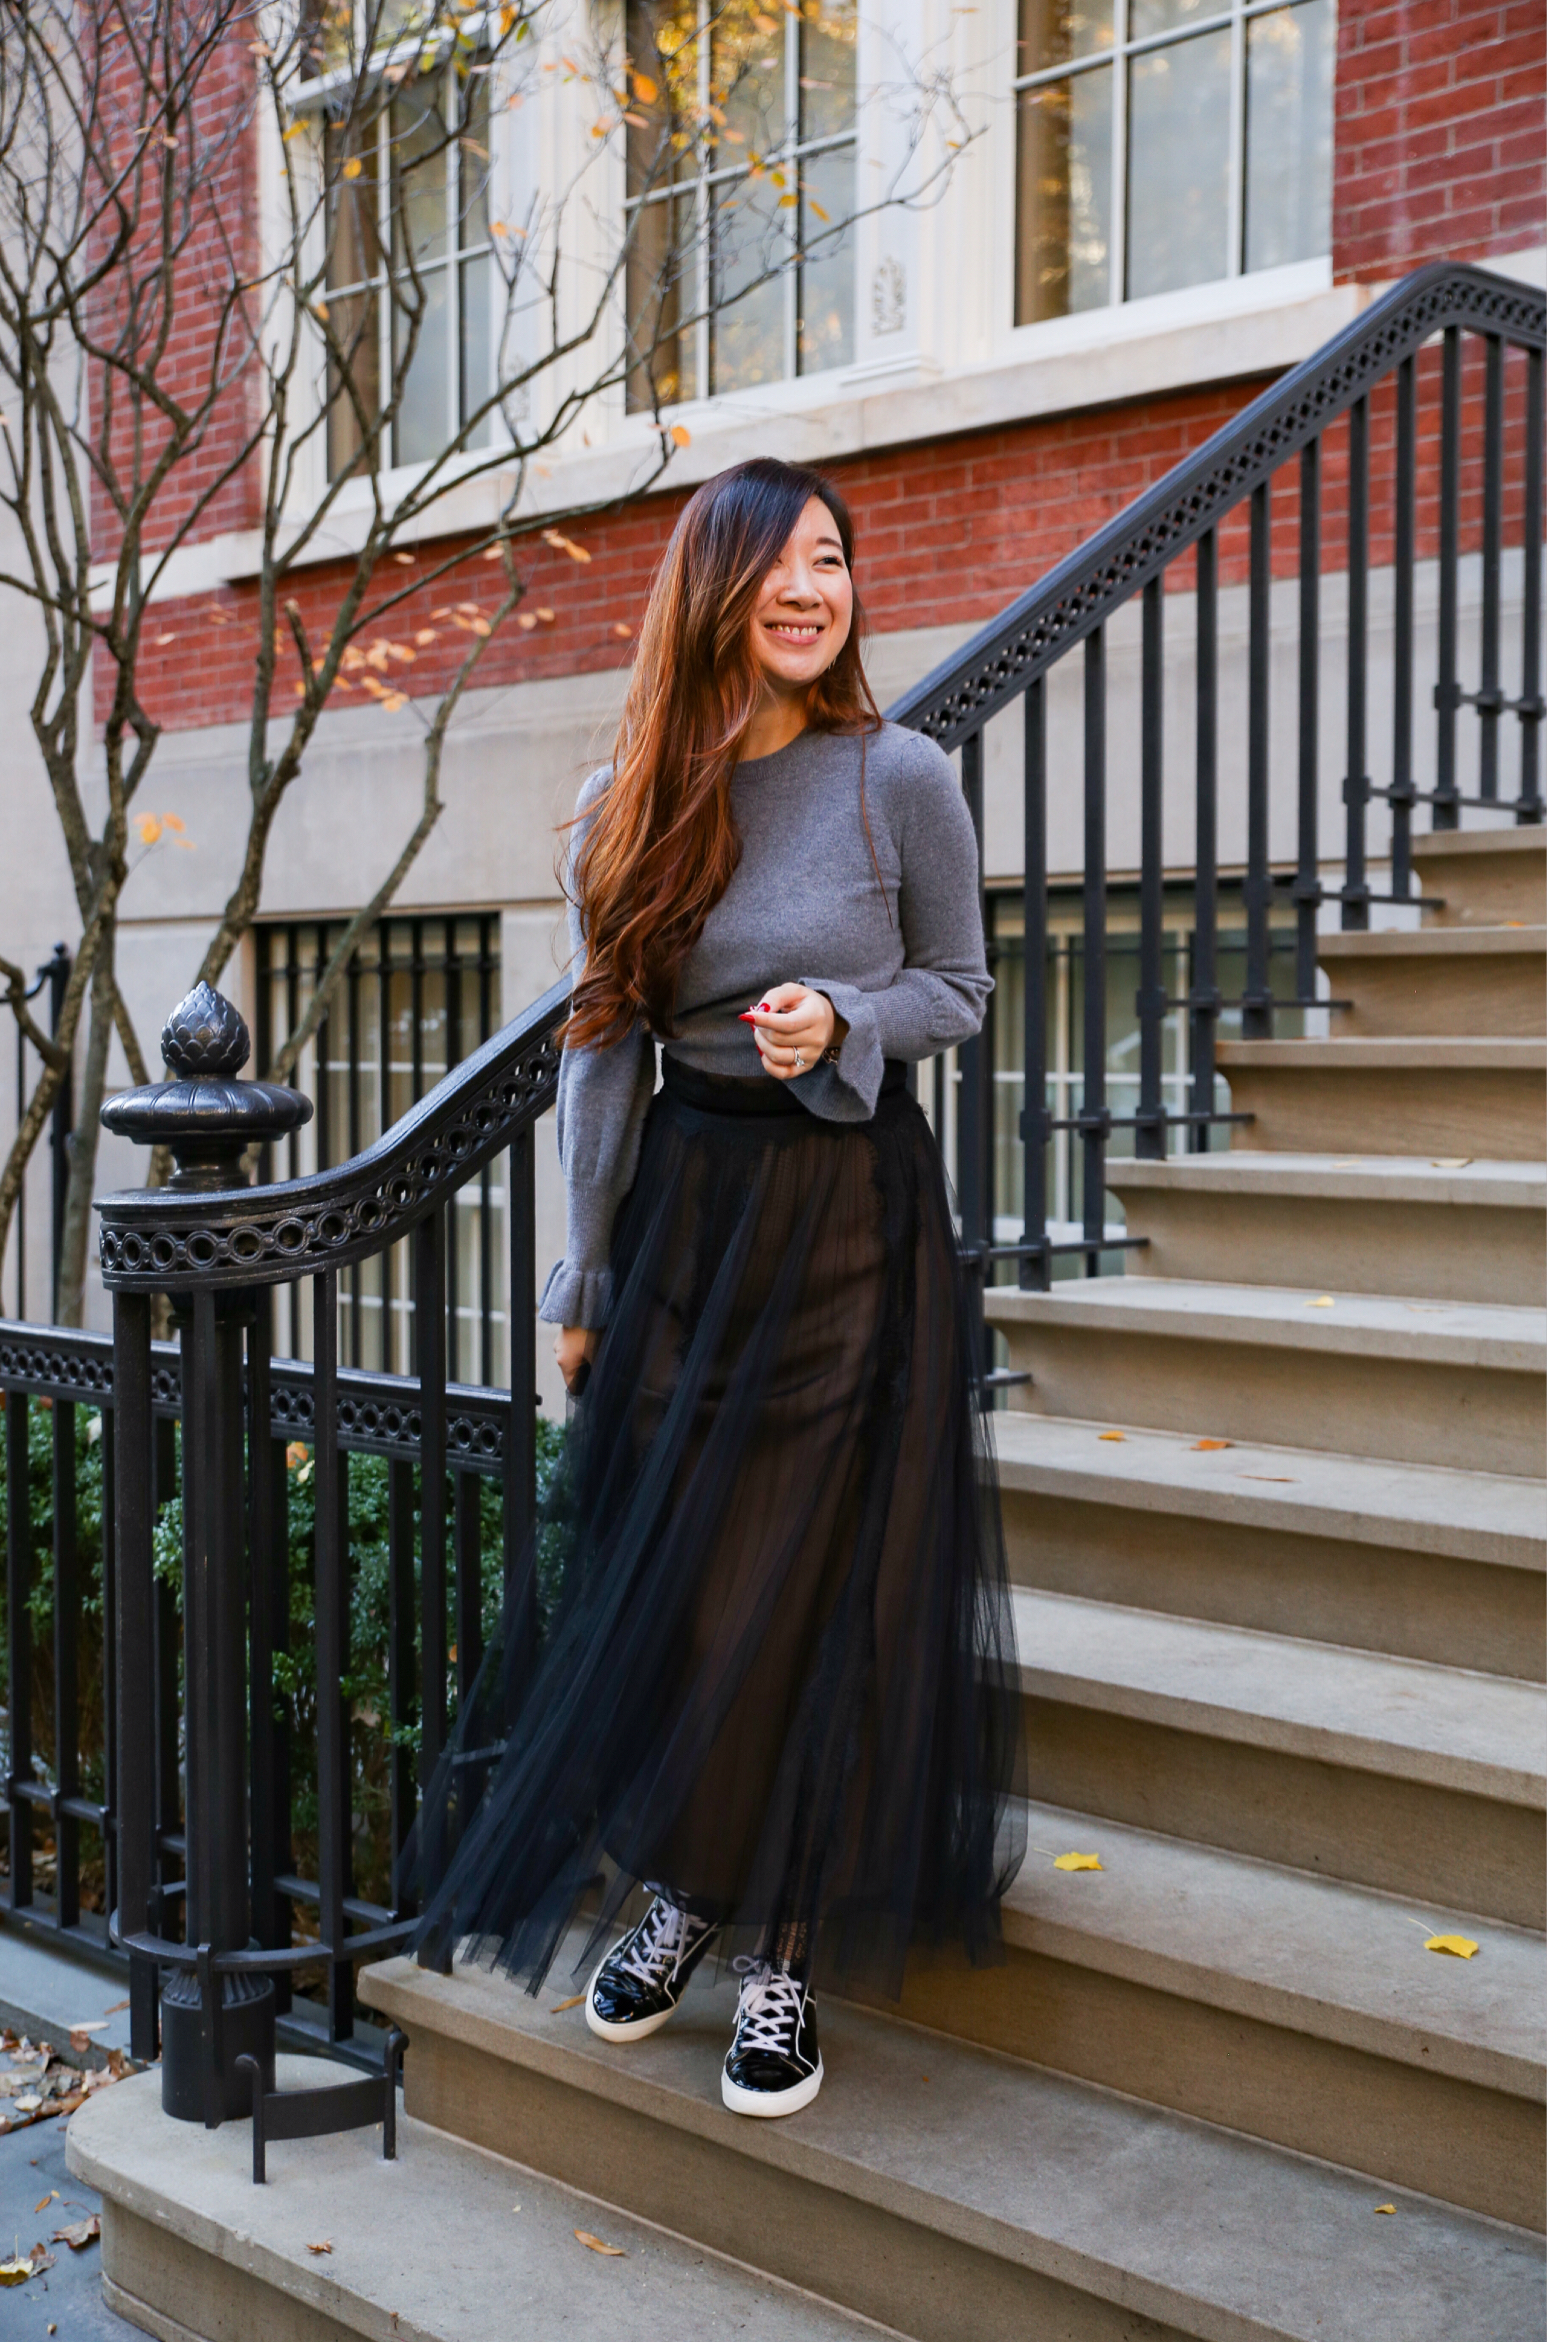 Yes to Tulle! - I love tulle skirts! And I think wearing this black one with the sweater makes a great outfit for a semi-casual date night or just brunch with the girls on the weekend!I paired the whole look with sneakers for that reason, to keep the overall look a bit more casual!Photo by Wini via The Laurel Creative Team.